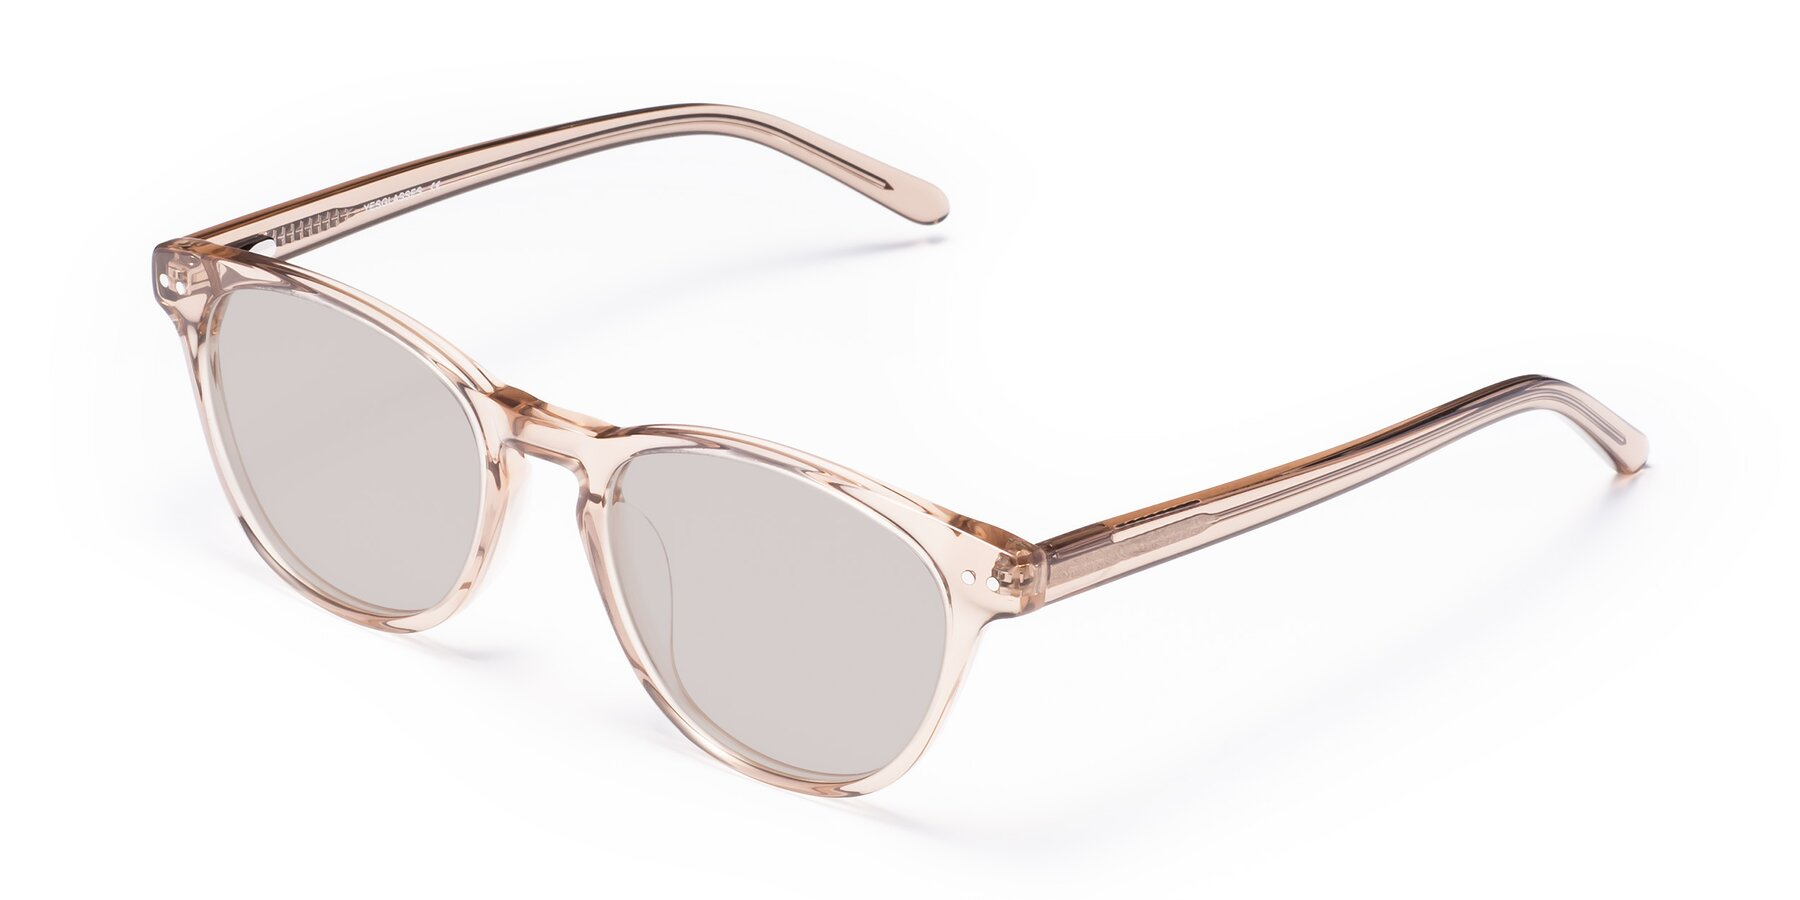 Angle of Blaze in light Brown with Light Brown Tinted Lenses